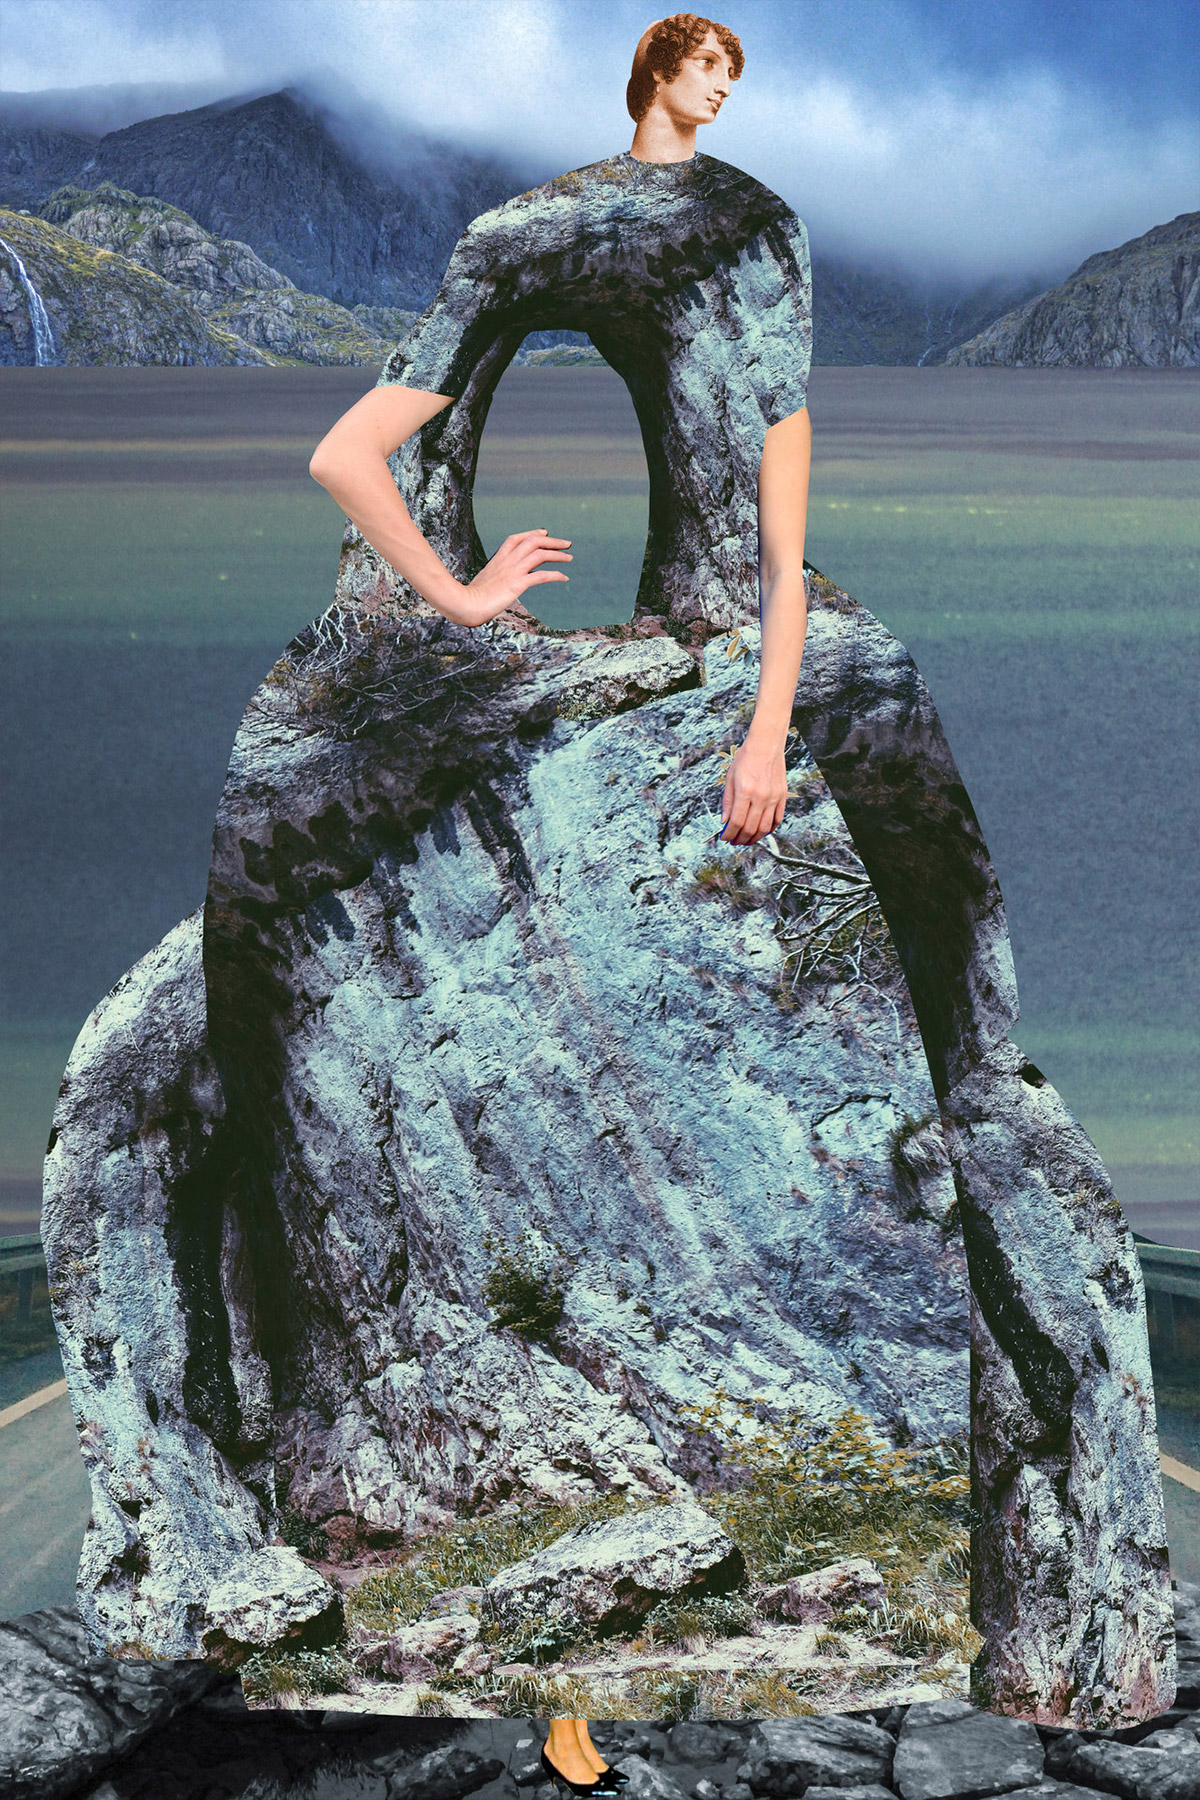 Imaginary Beings: Fantastic Collages by Johanna Goodman